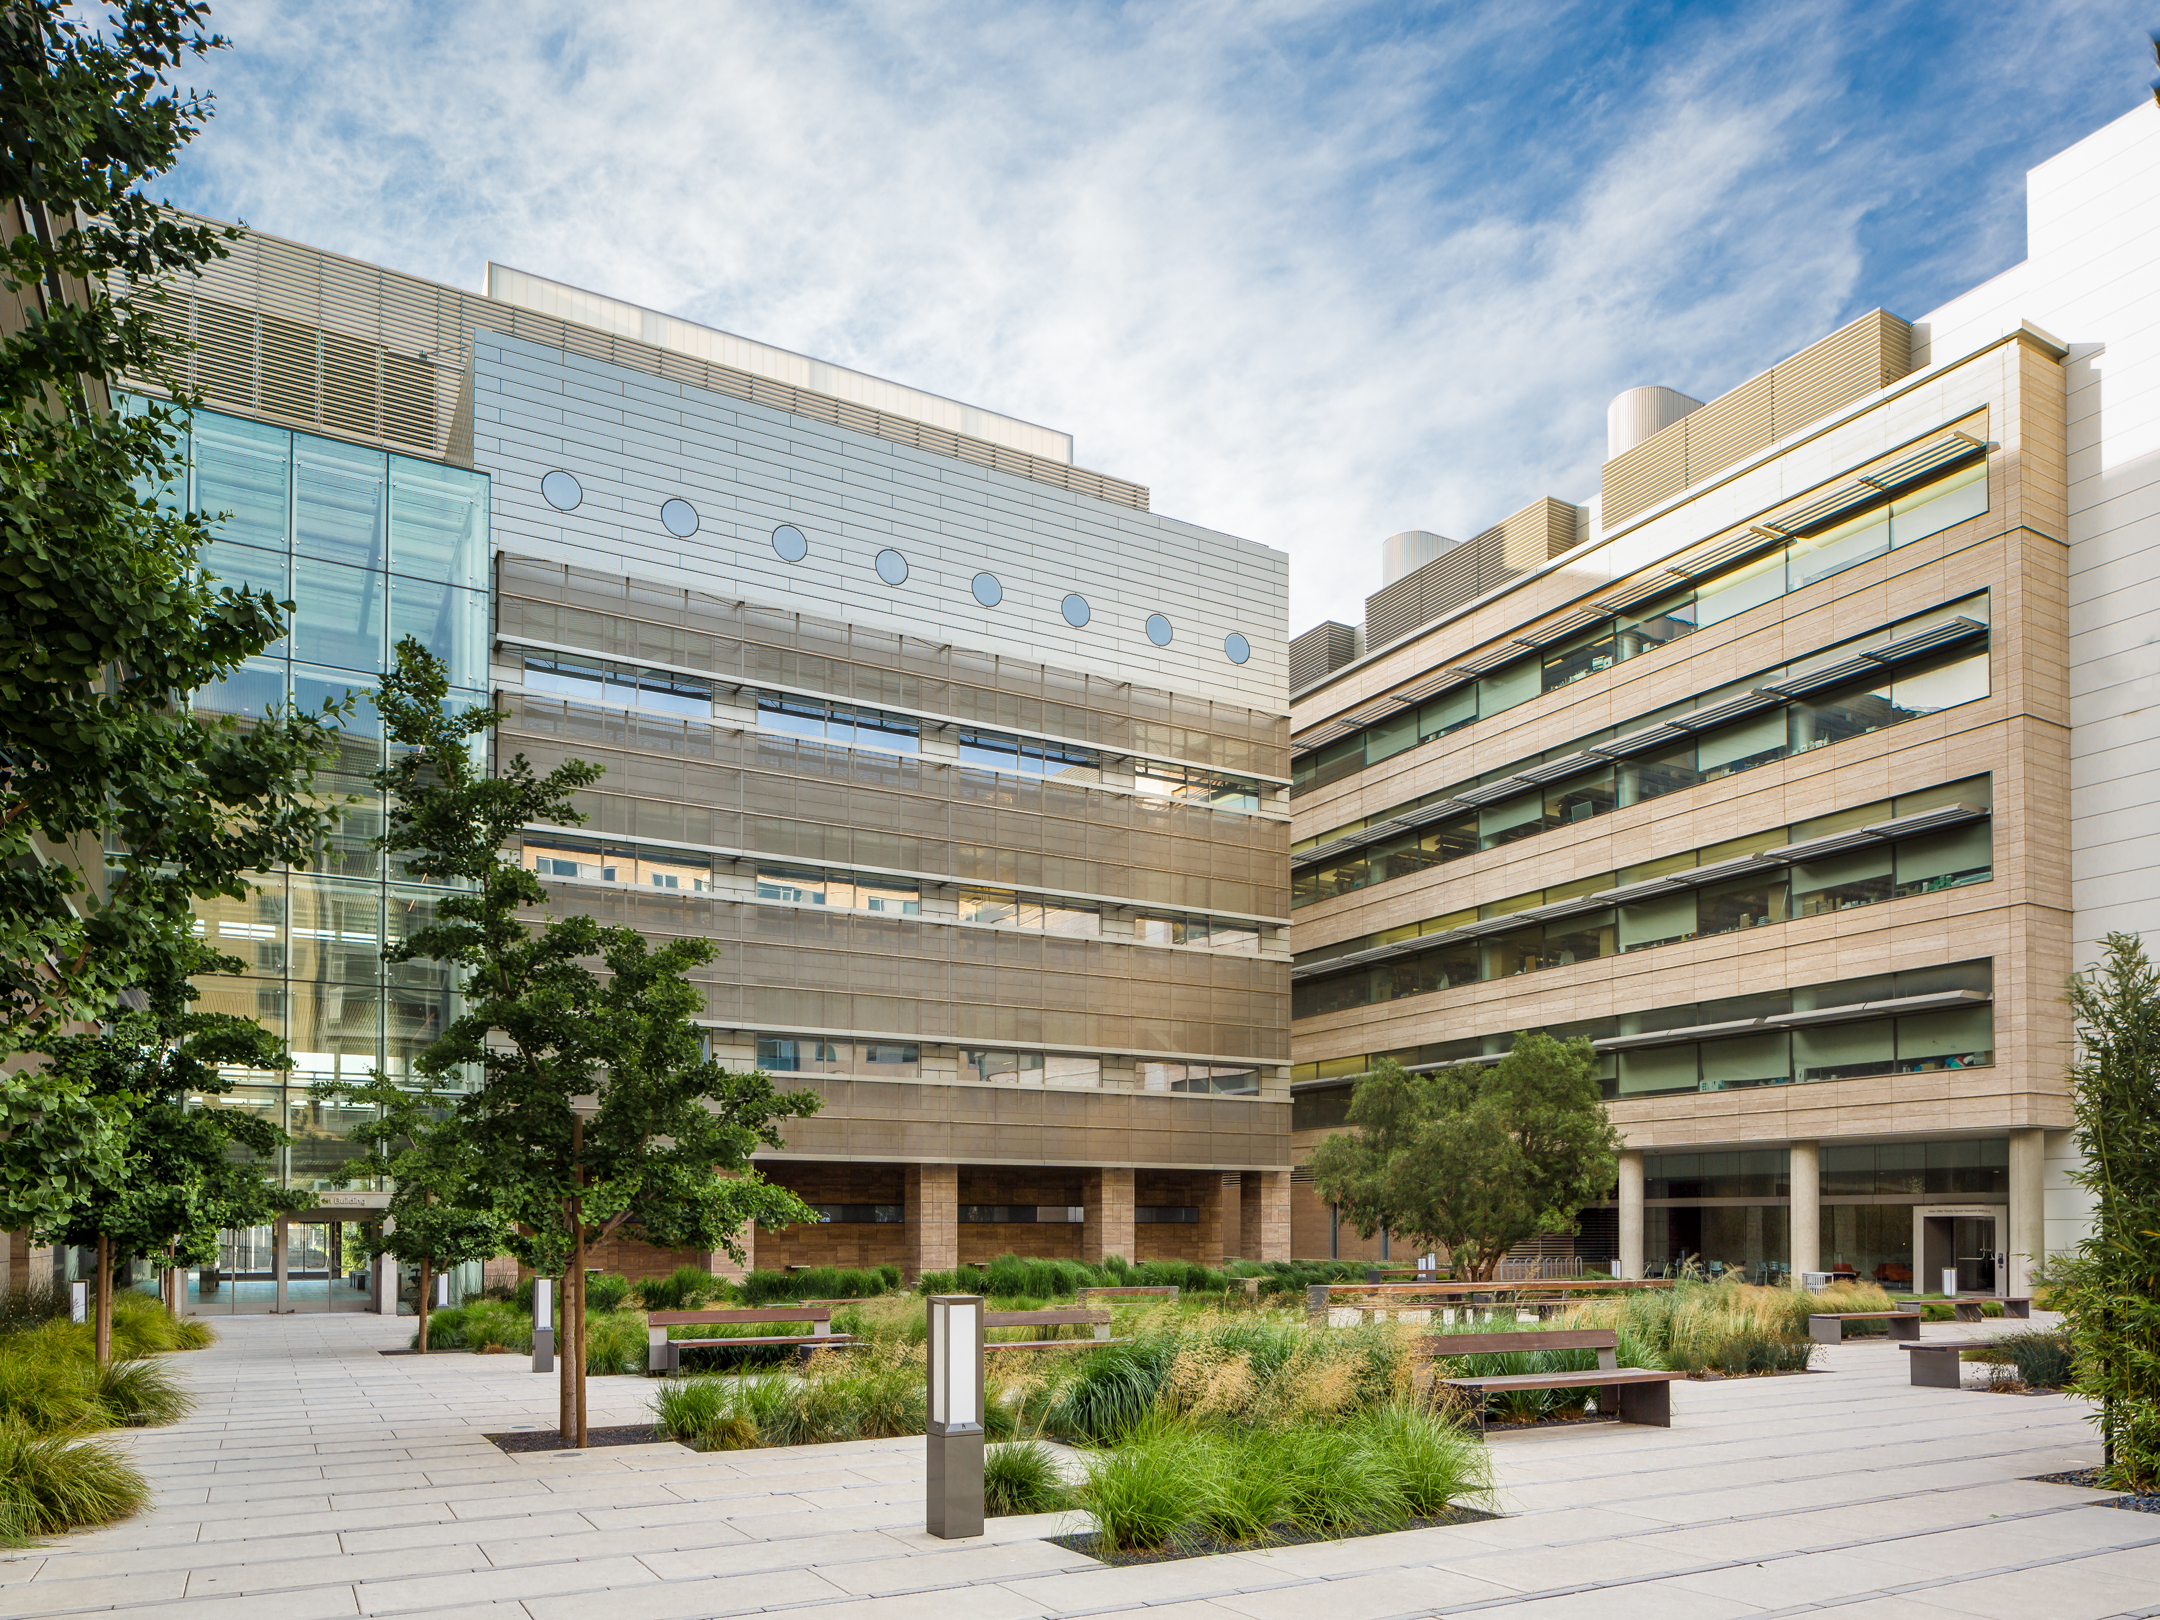 UCSF Smith Cardiovascular Research Building Mission Bay